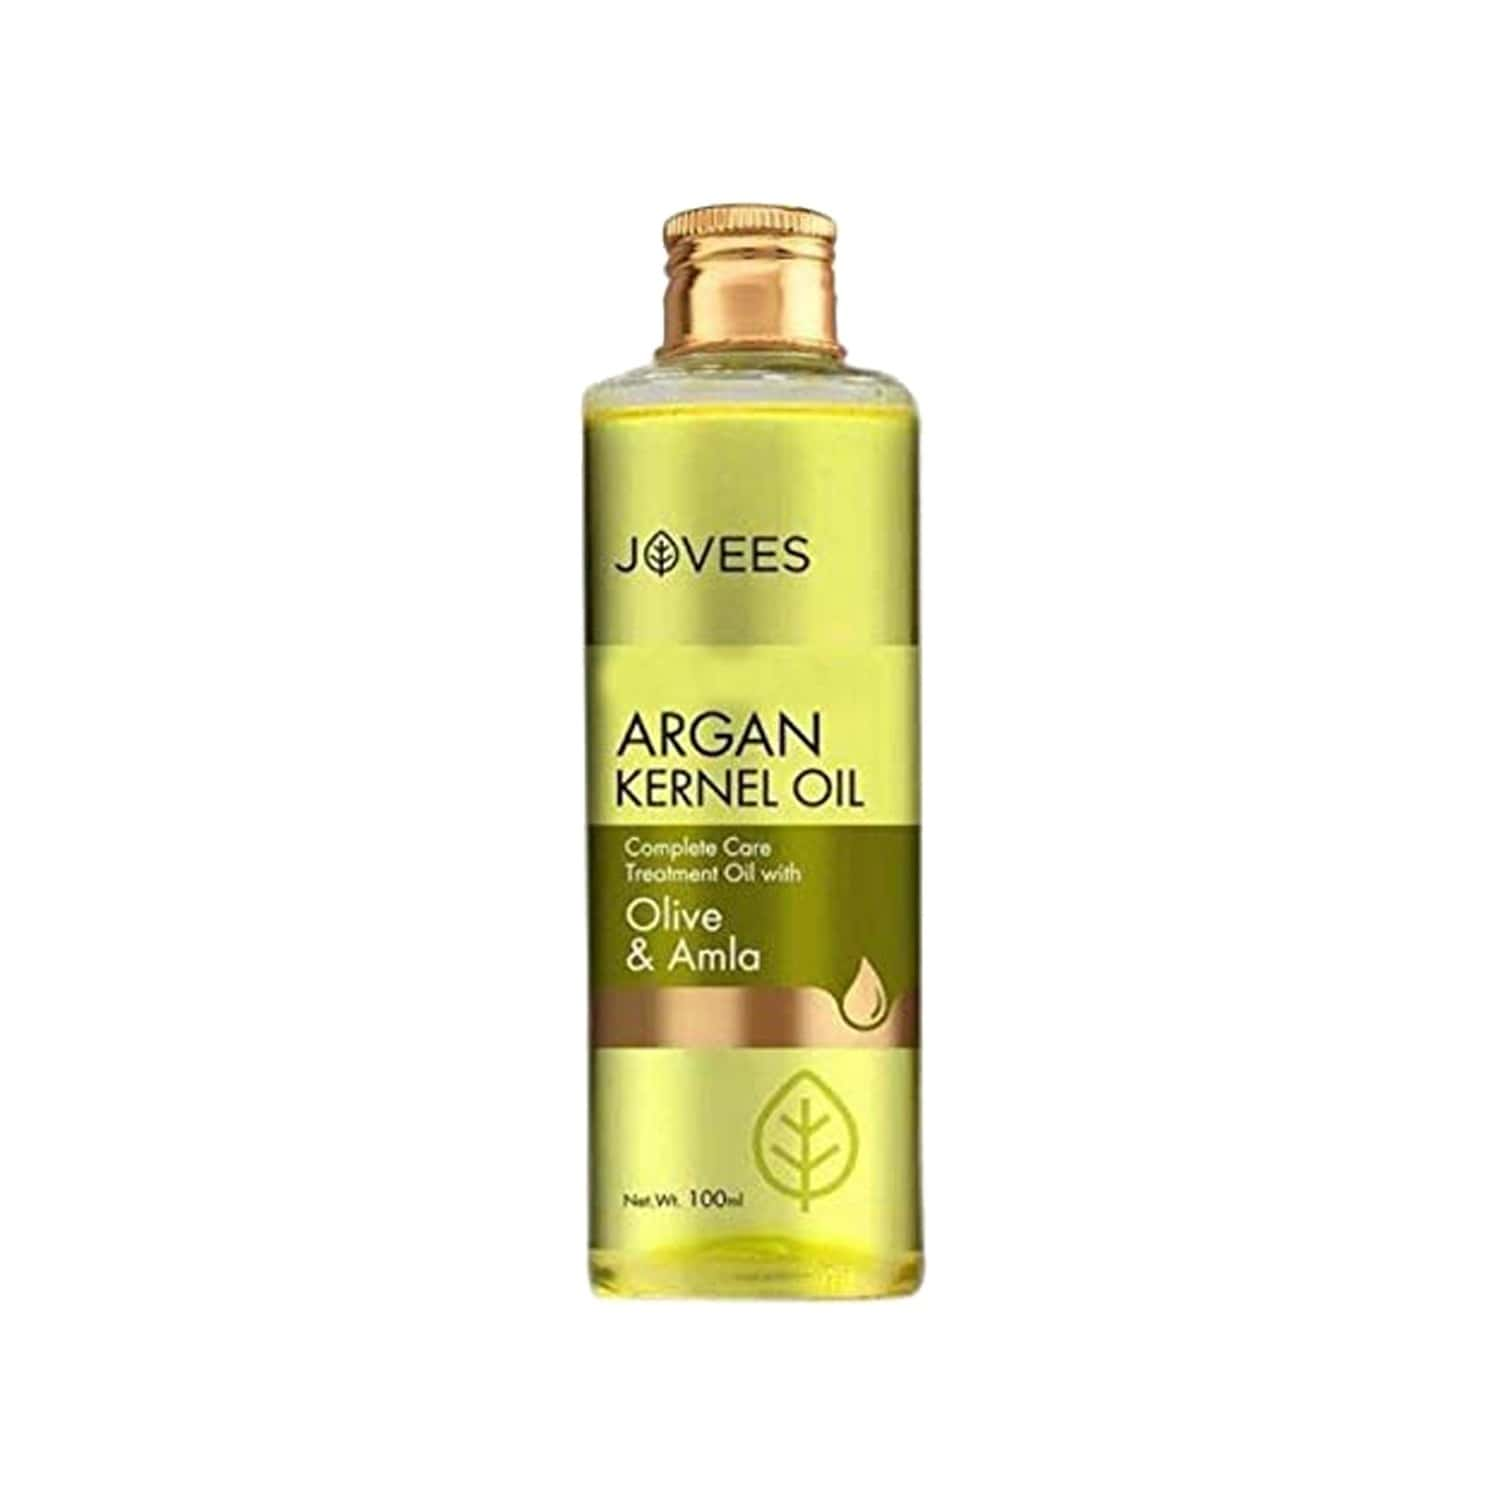 Jovees Argan Kernel Hair Regrowth Complete Care Treatment Oil With Olive & Amla - 100 Ml